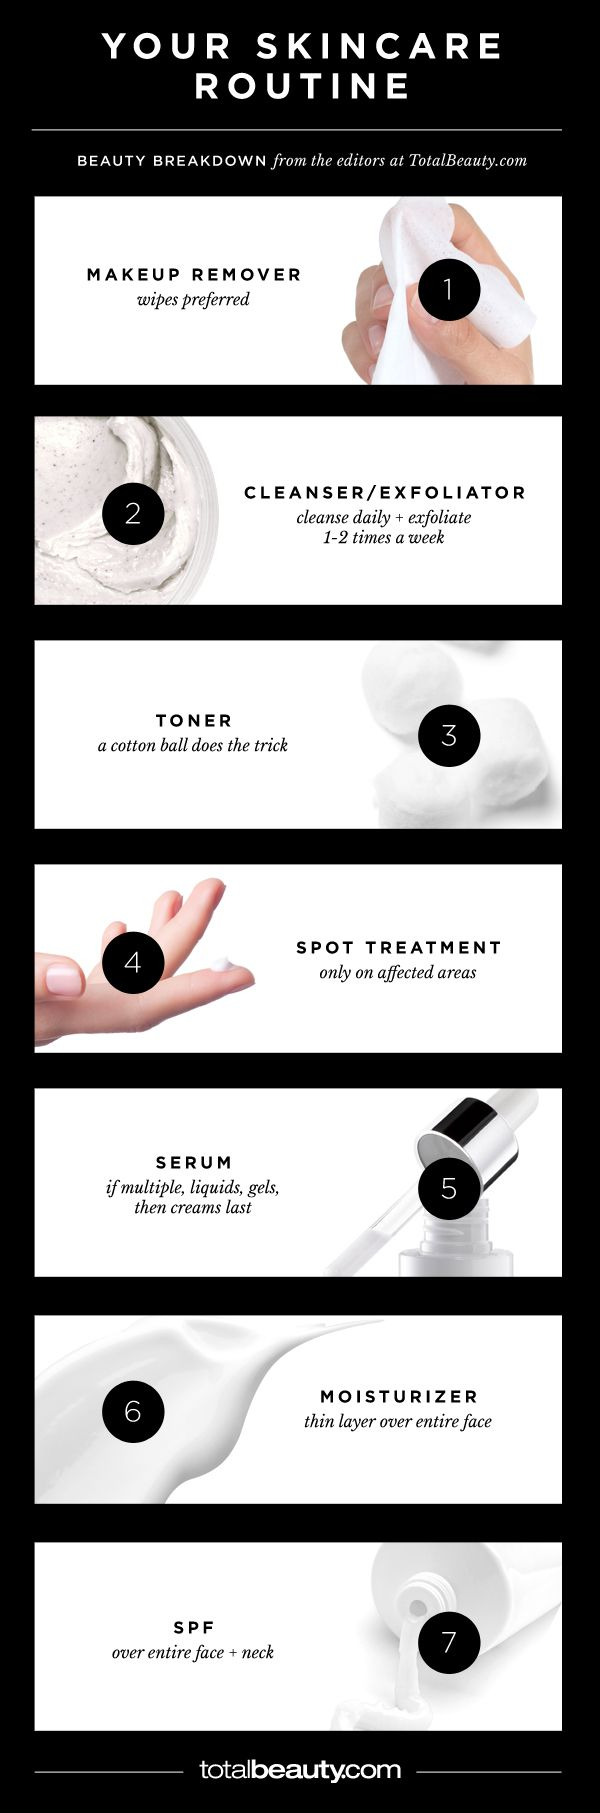 The Only Skincare Guide You'll Ever Need. A cheat sheet for every step of your cleansing, treating and anti-aging routine. Make sure you are using your skincare products properly!